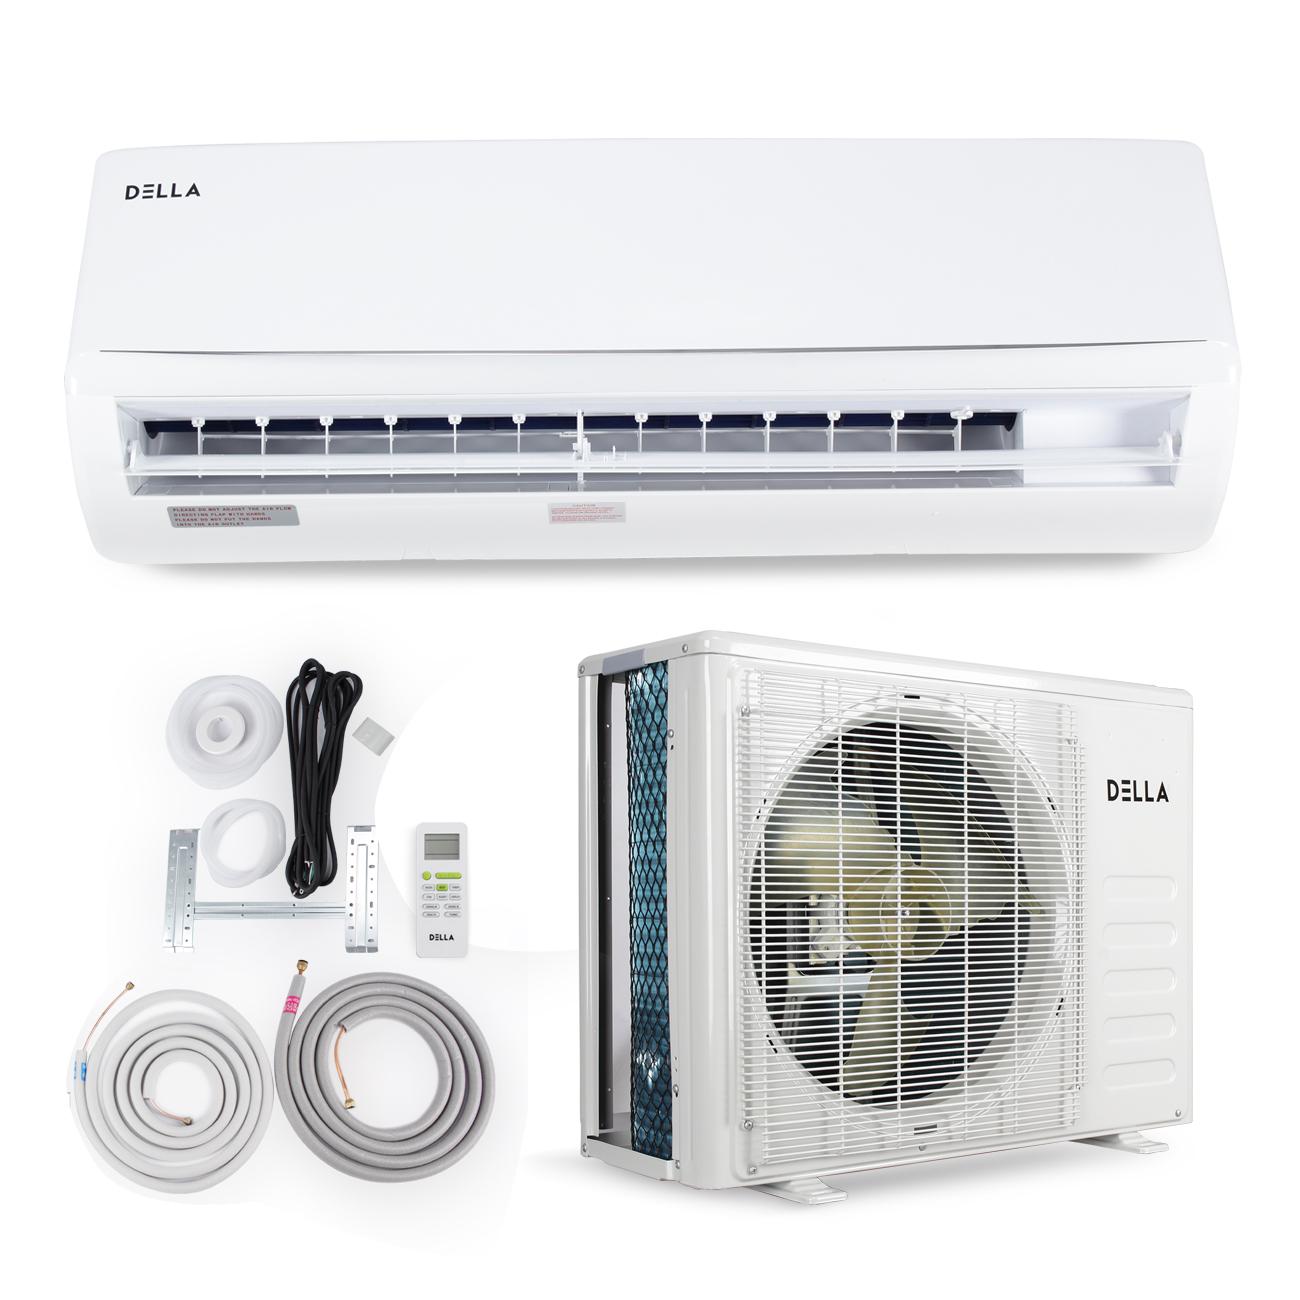 DELLA 24,000 BTU Mini-Split AHRI Certificate Air Conditioner Heat Pump System w/ 16' Installation Kit, 230V - 18 SEER